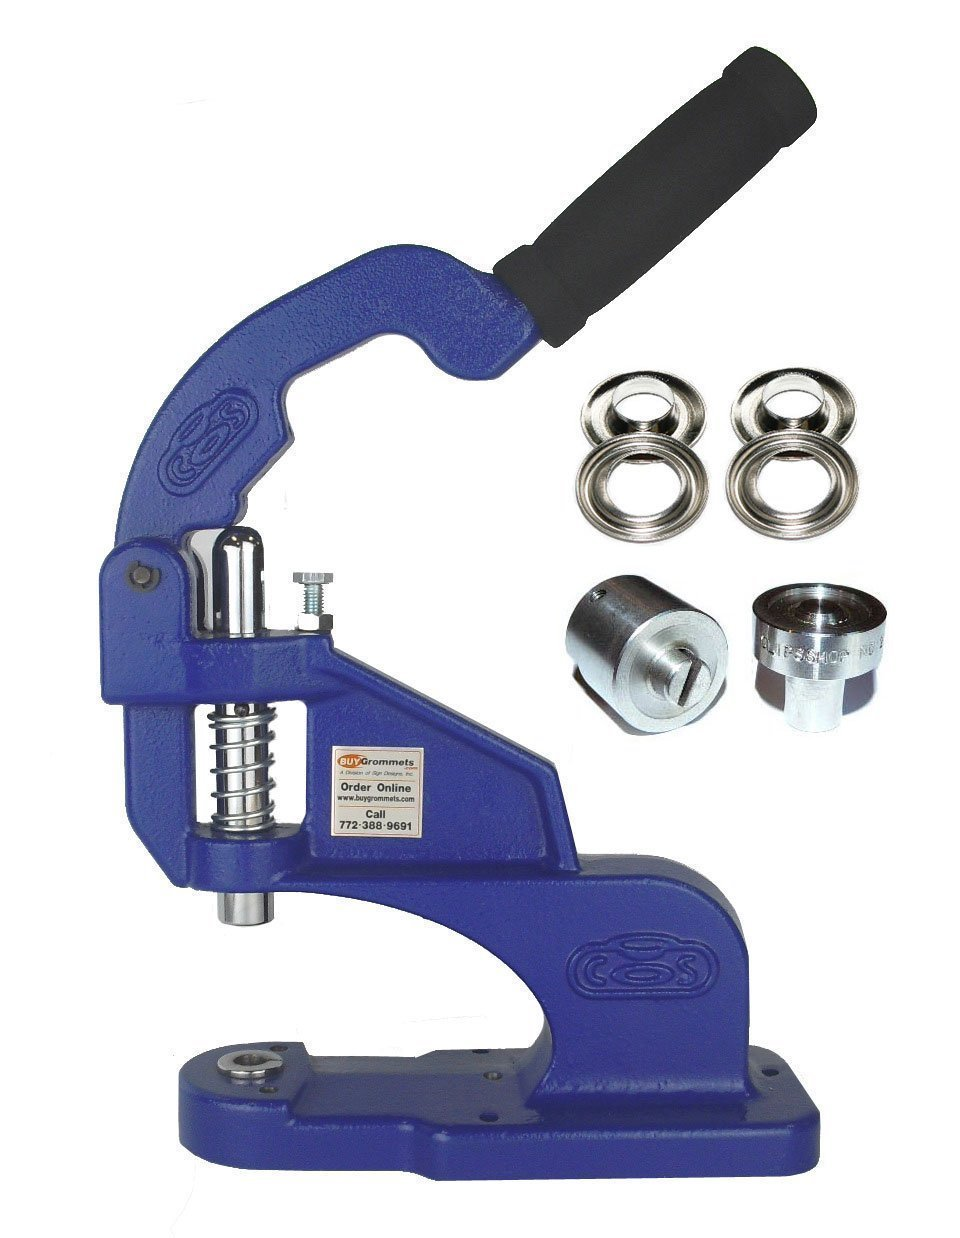 Clips Shop CSTEP-2 Grommet Machine Complete Kit Includes #3 7/16'' Nickel Grommets Qty 500 & #3 7/16'' Stainless Steel Die Set